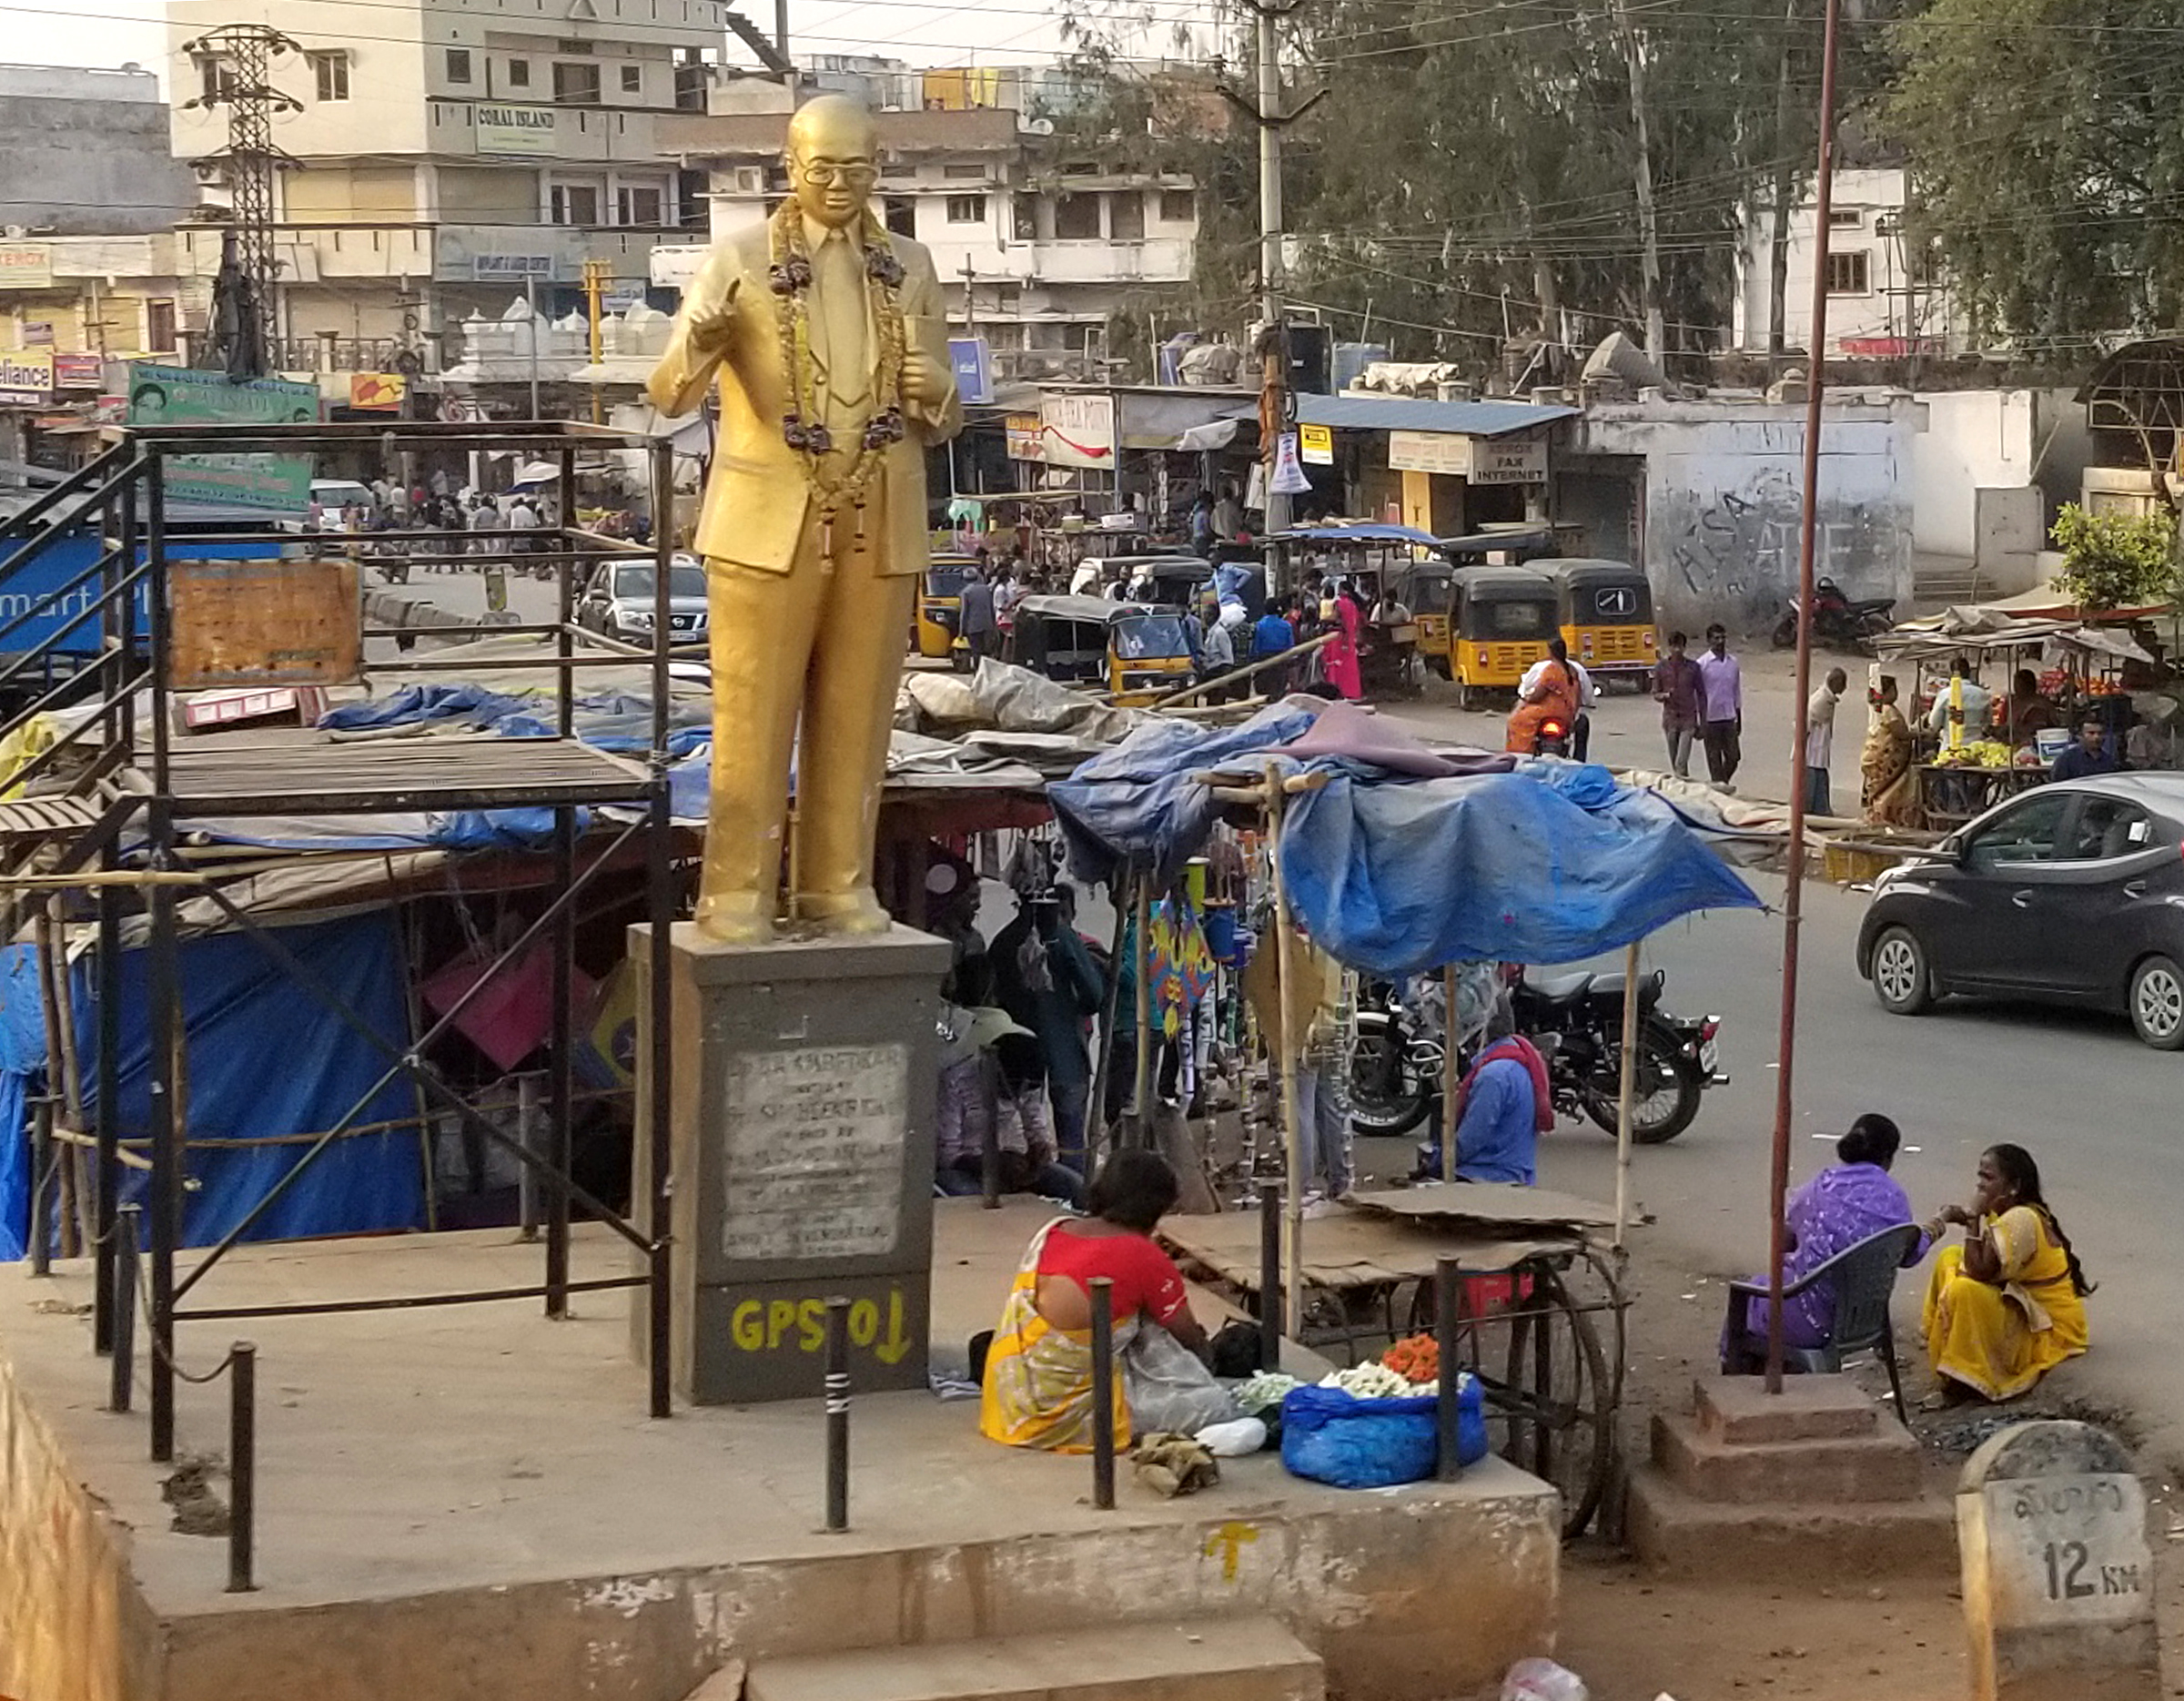 Every where you go there are statues. Usually dedicated to a local politician who did something for that community. Ego and prestige is an integral part of the culture.